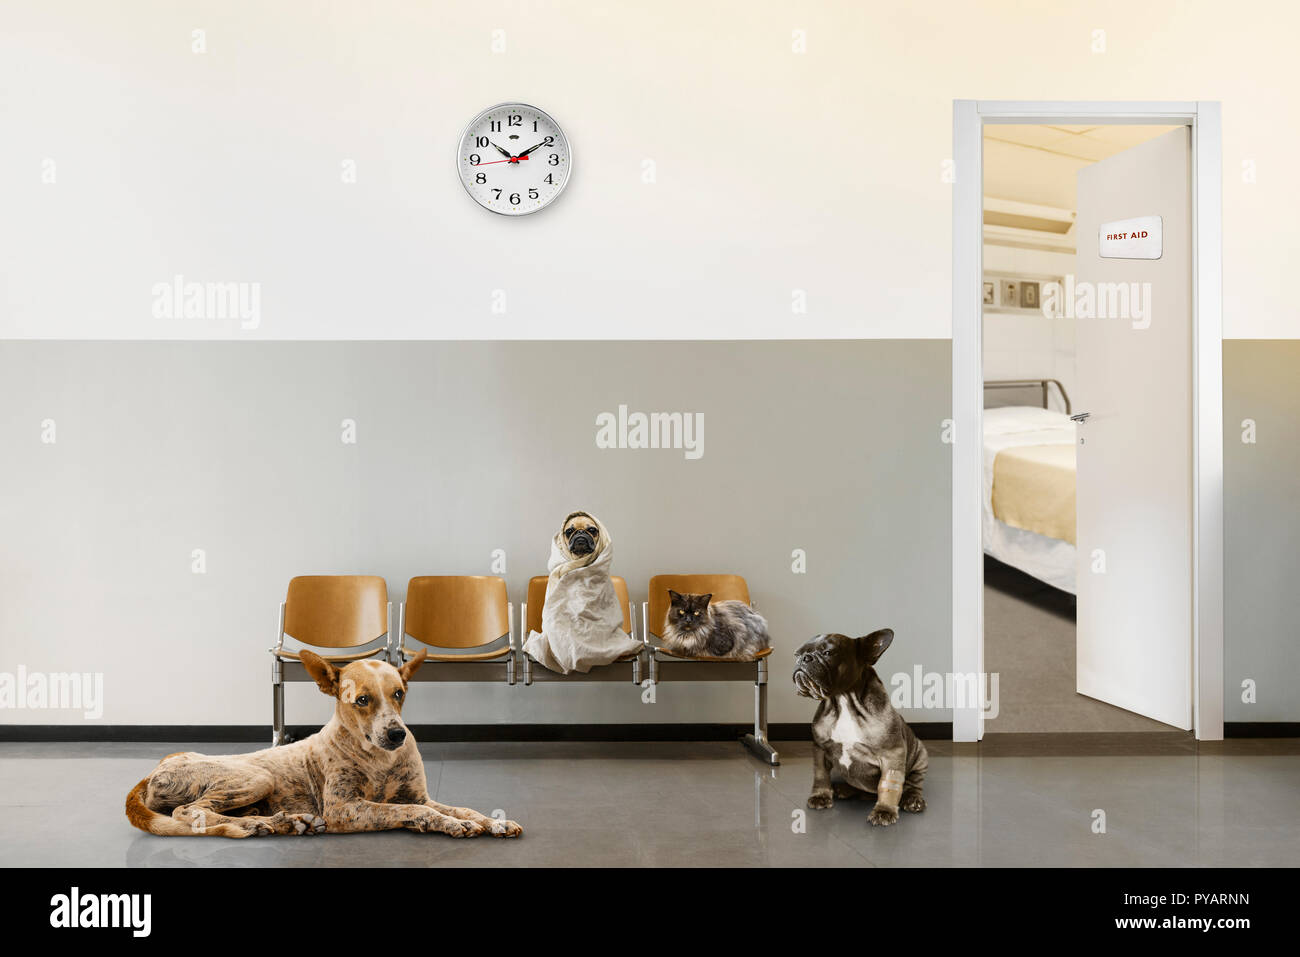 veterinary waiting room with chairs, clock, open door and group of sitting animals. - Stock Image